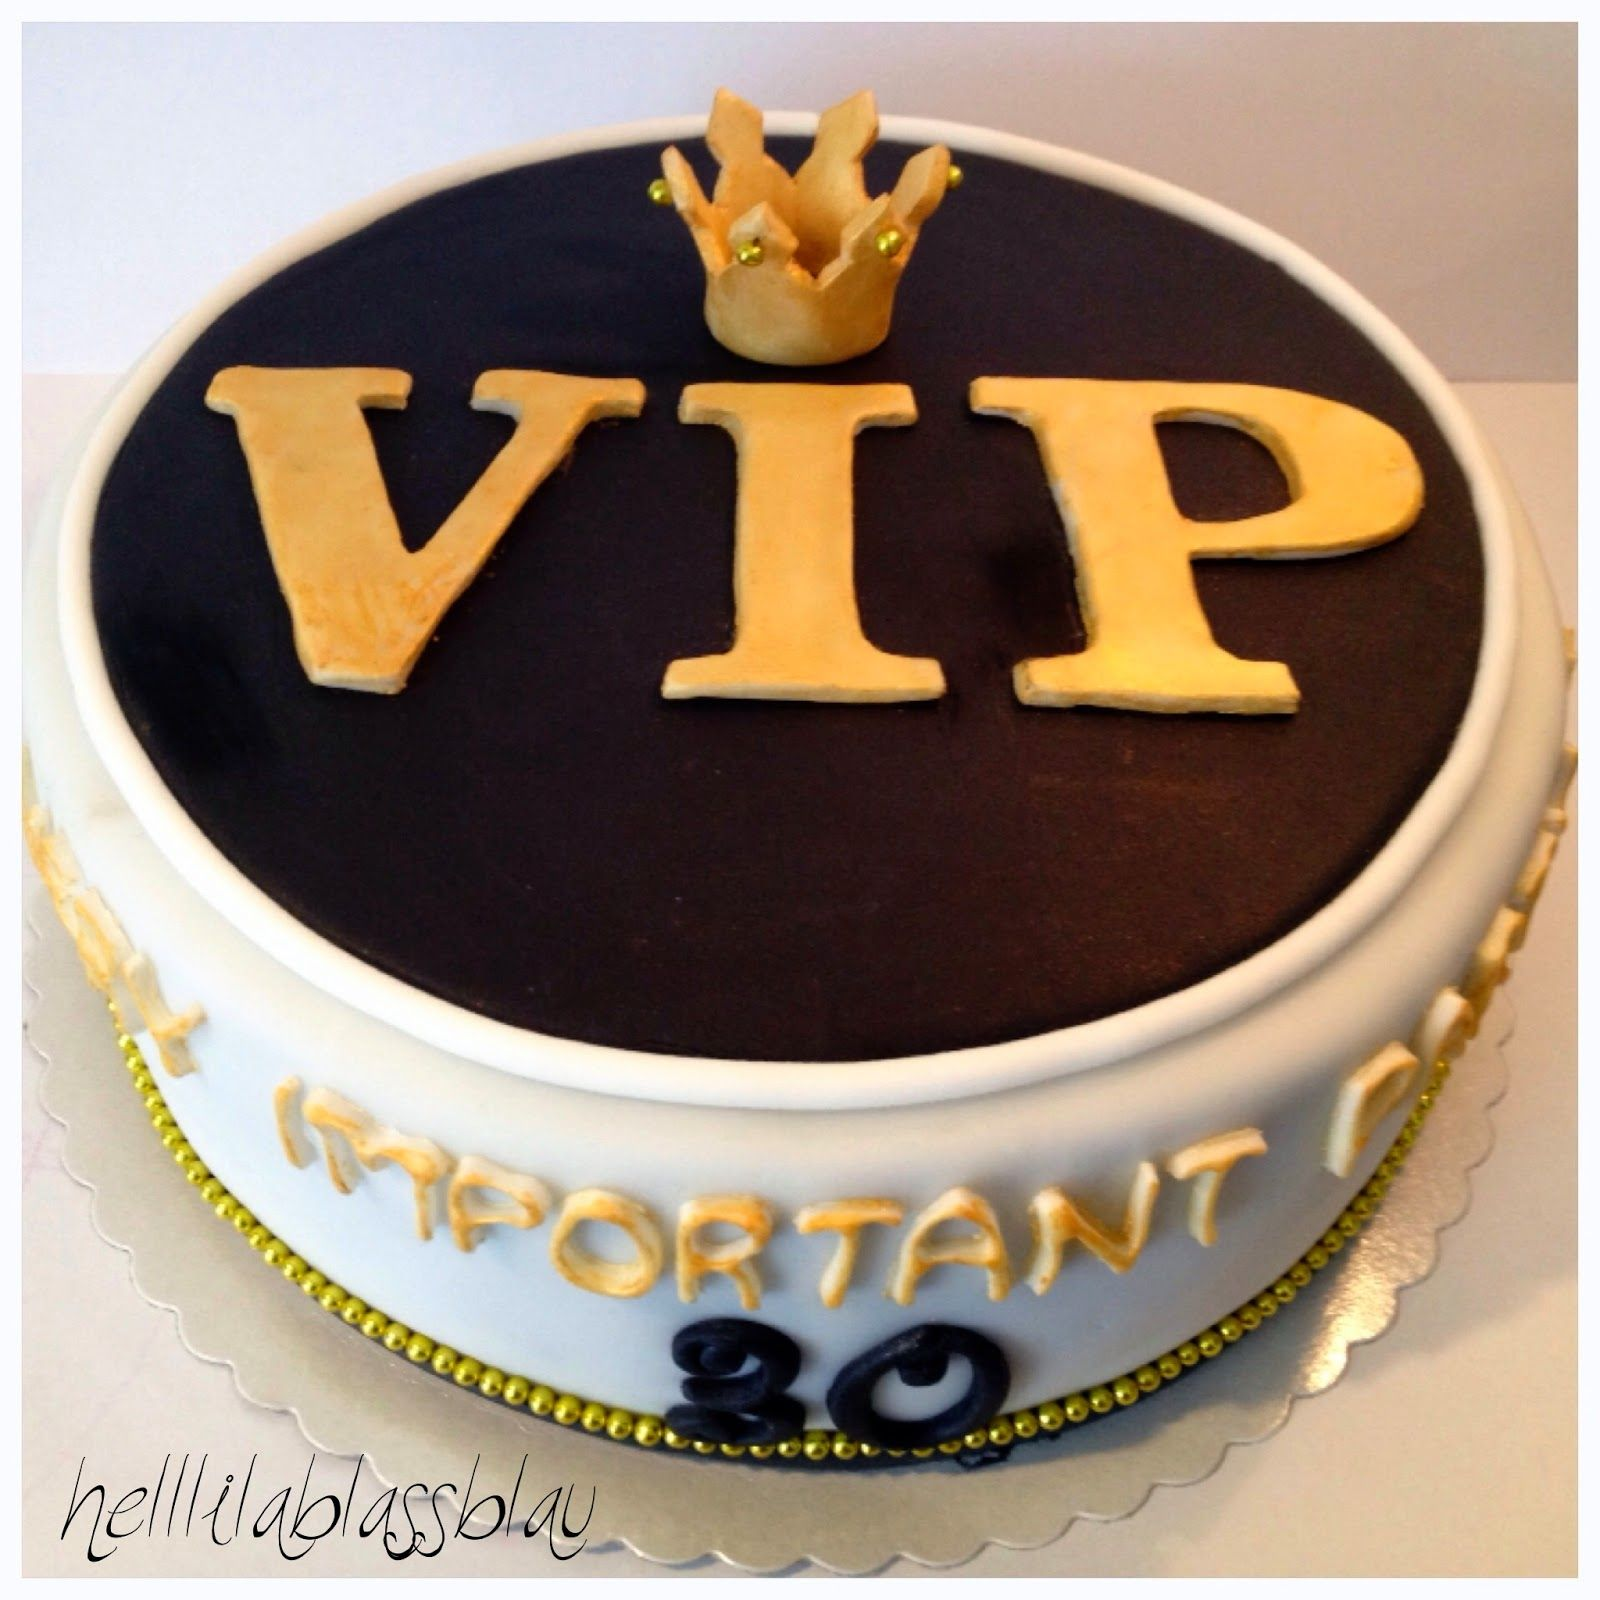 vip torte zum 30 geburtstag very important party motivtorten. Black Bedroom Furniture Sets. Home Design Ideas